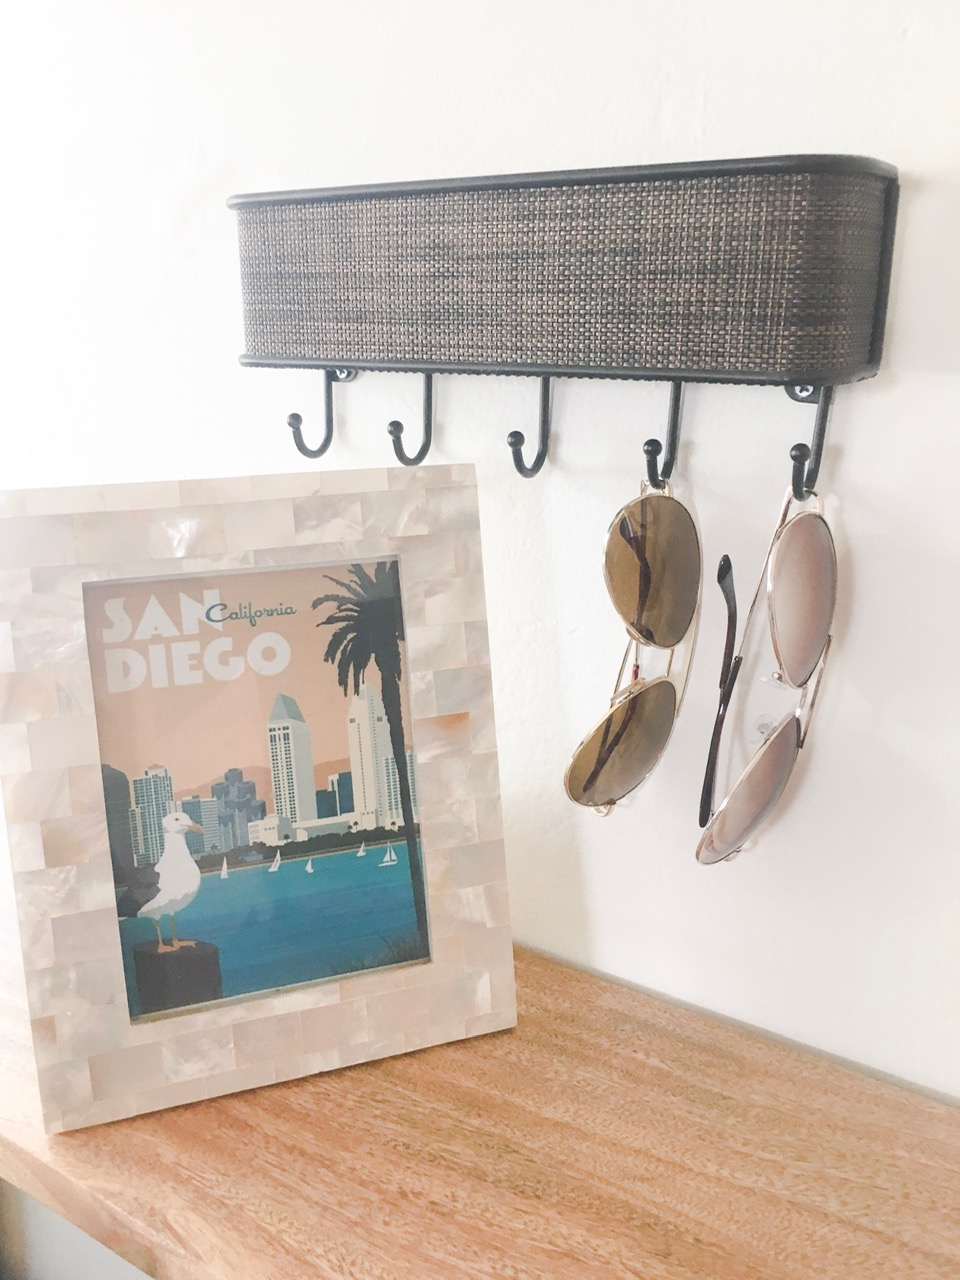 This is an example of a creative way of displaying a gift for your guests- this host is providing sunglasses in Sunny San Diego for their guests! The glasses are only $3 each, but they are very thoughtful, and will help give this host a 5 star review!